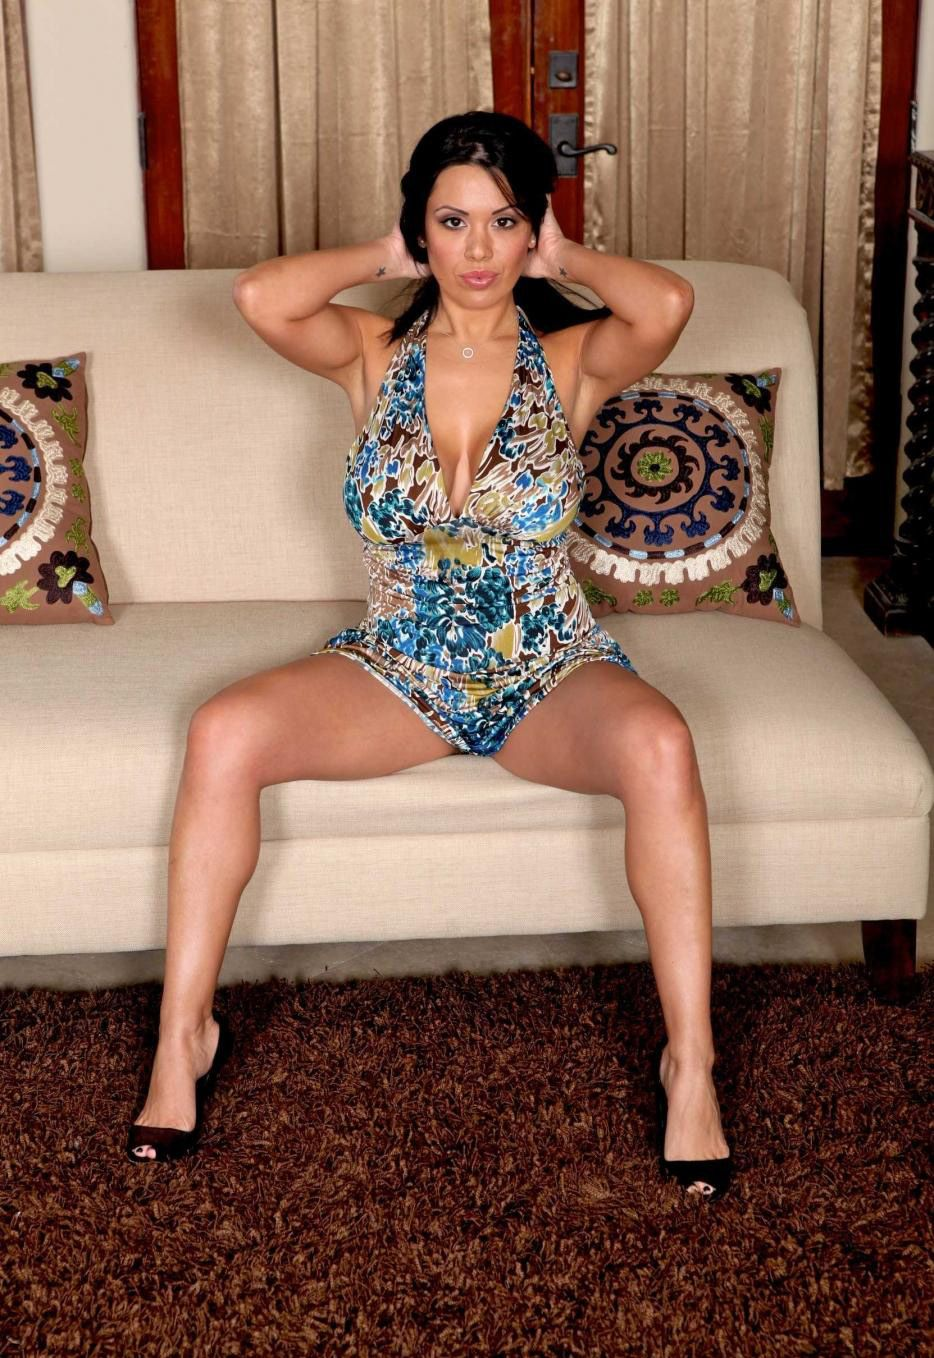 sienna west latina